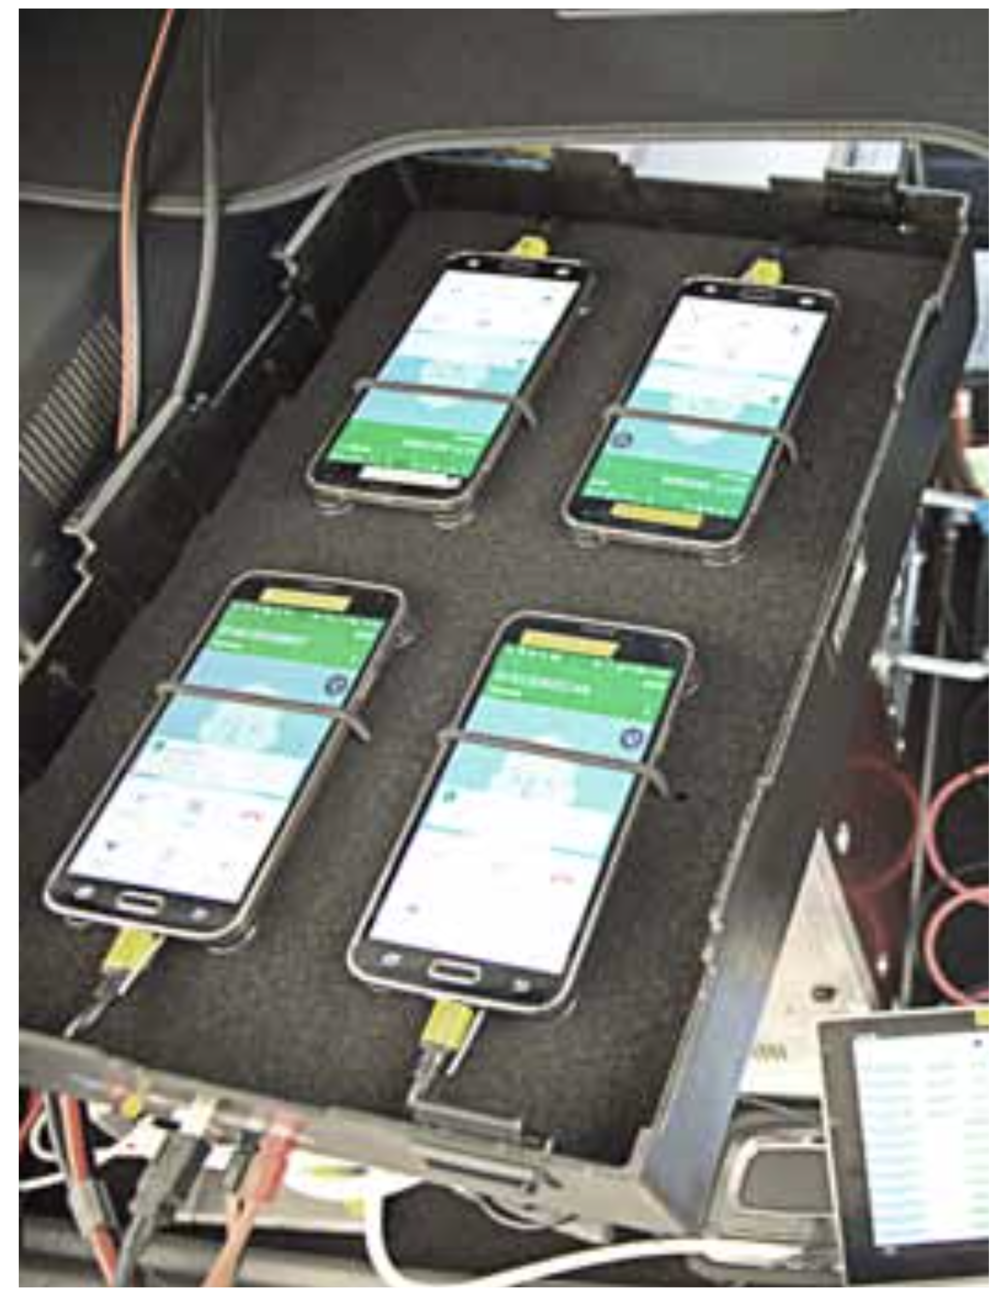 Each car carried a total of nine smartphones, housed in separate boxes – six per car were used for the voice tests and three additional ones for the data tests. Altogether, 36 devices were used in the drivetests.